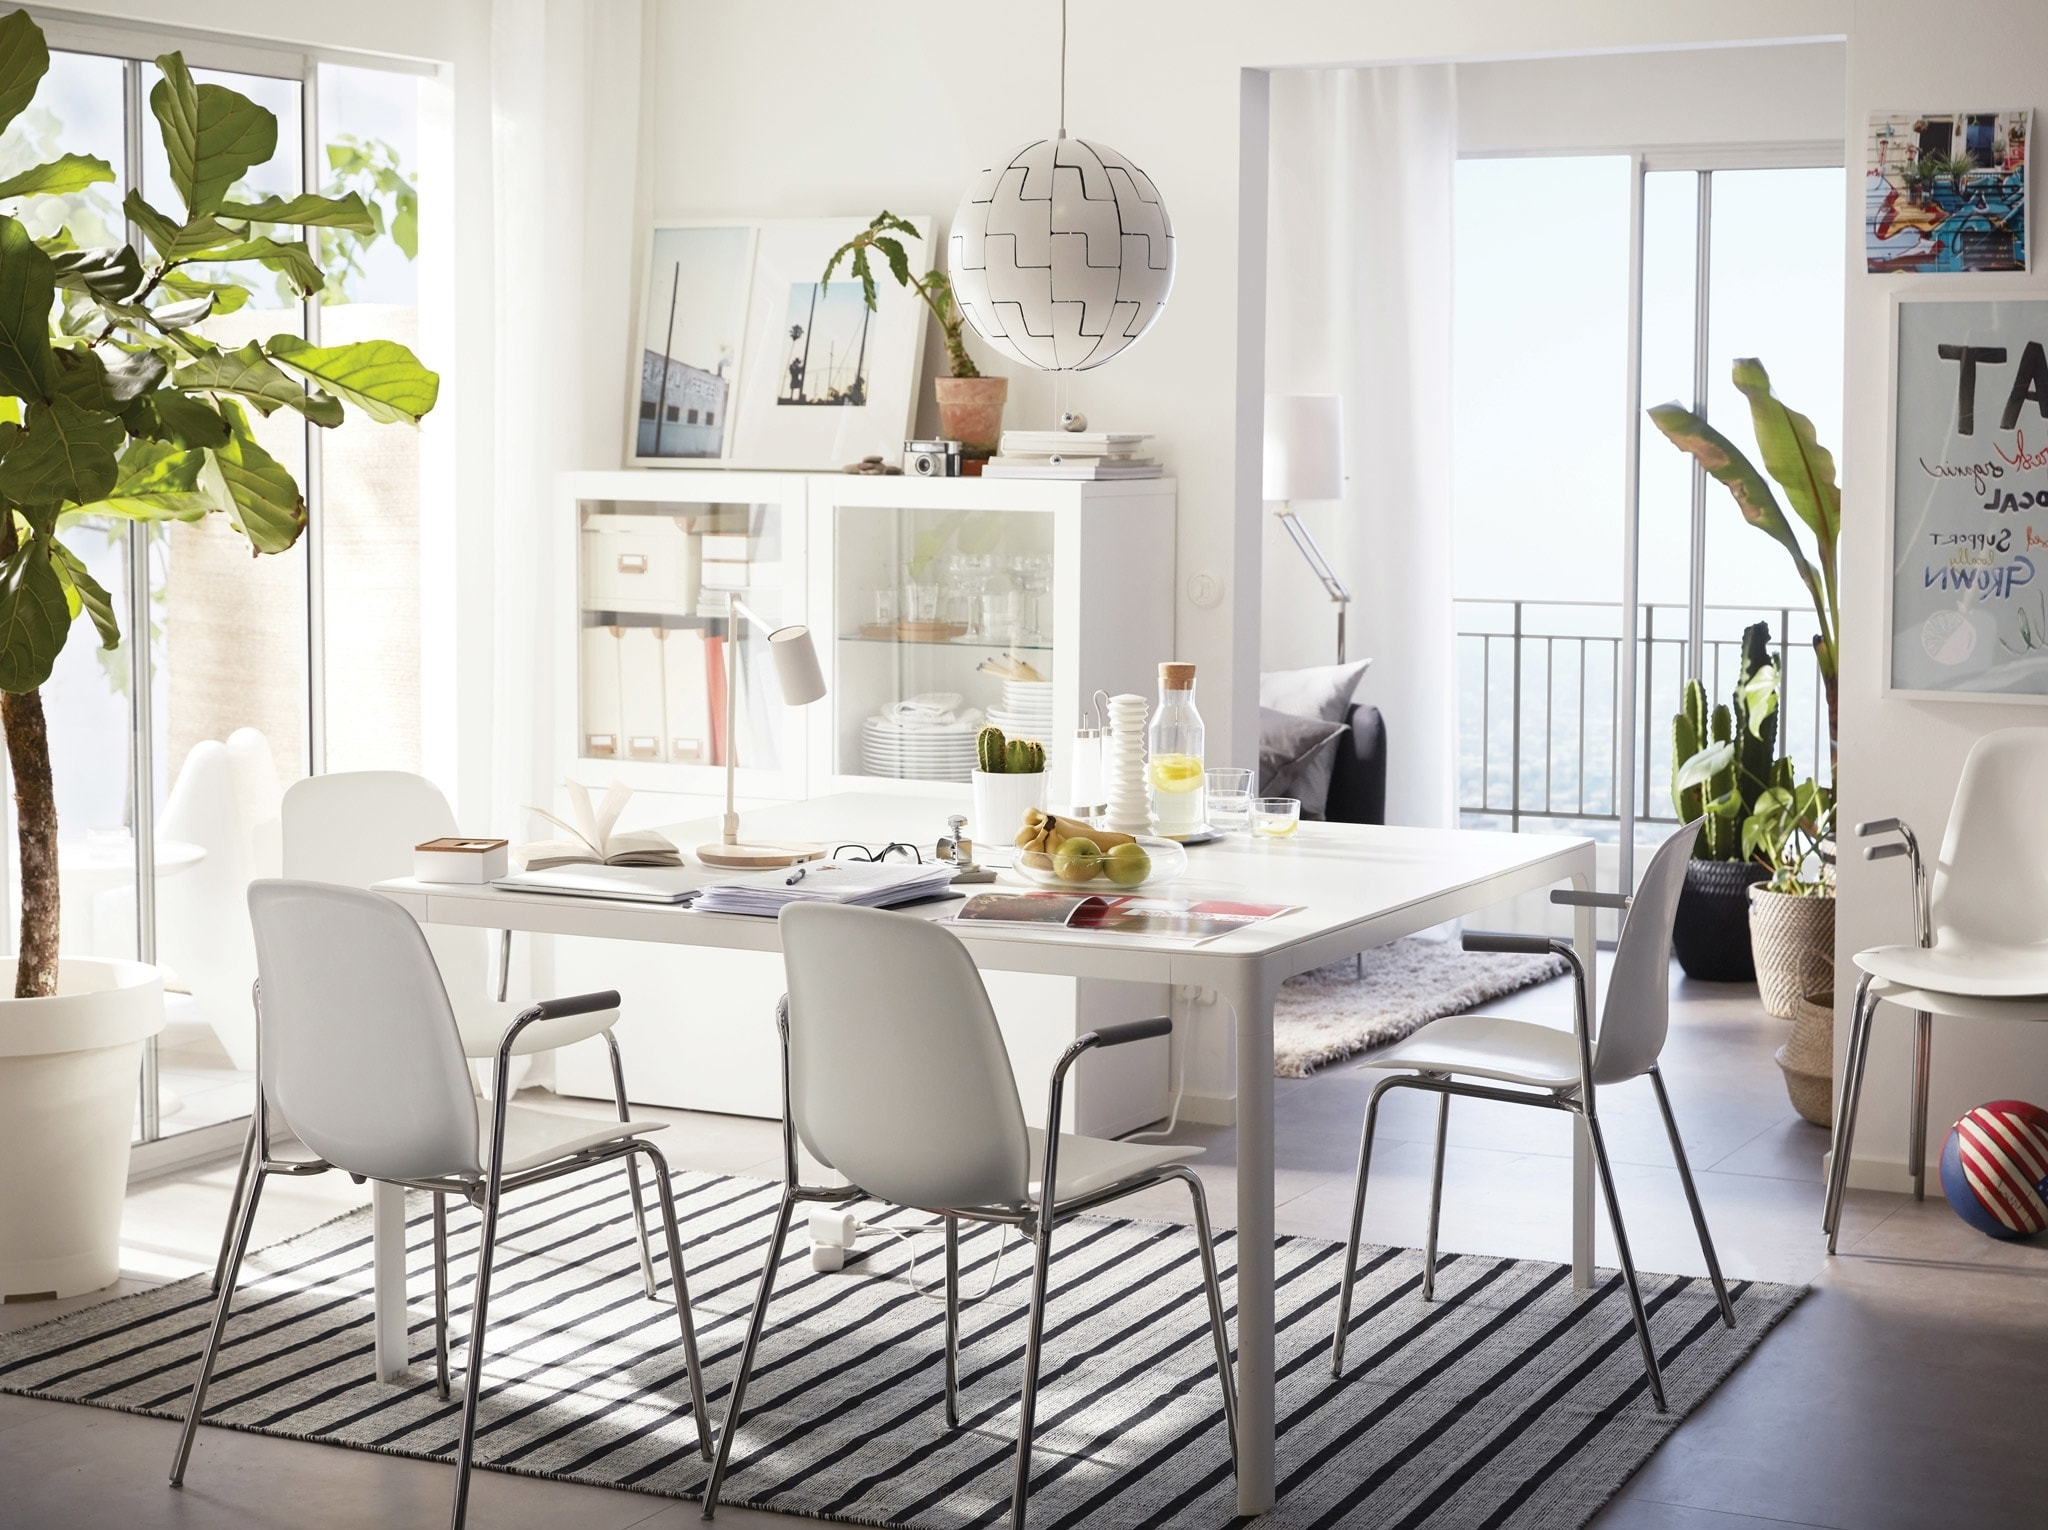 Ikea Intended For White Dining Tables And Chairs (Gallery 9 of 25)